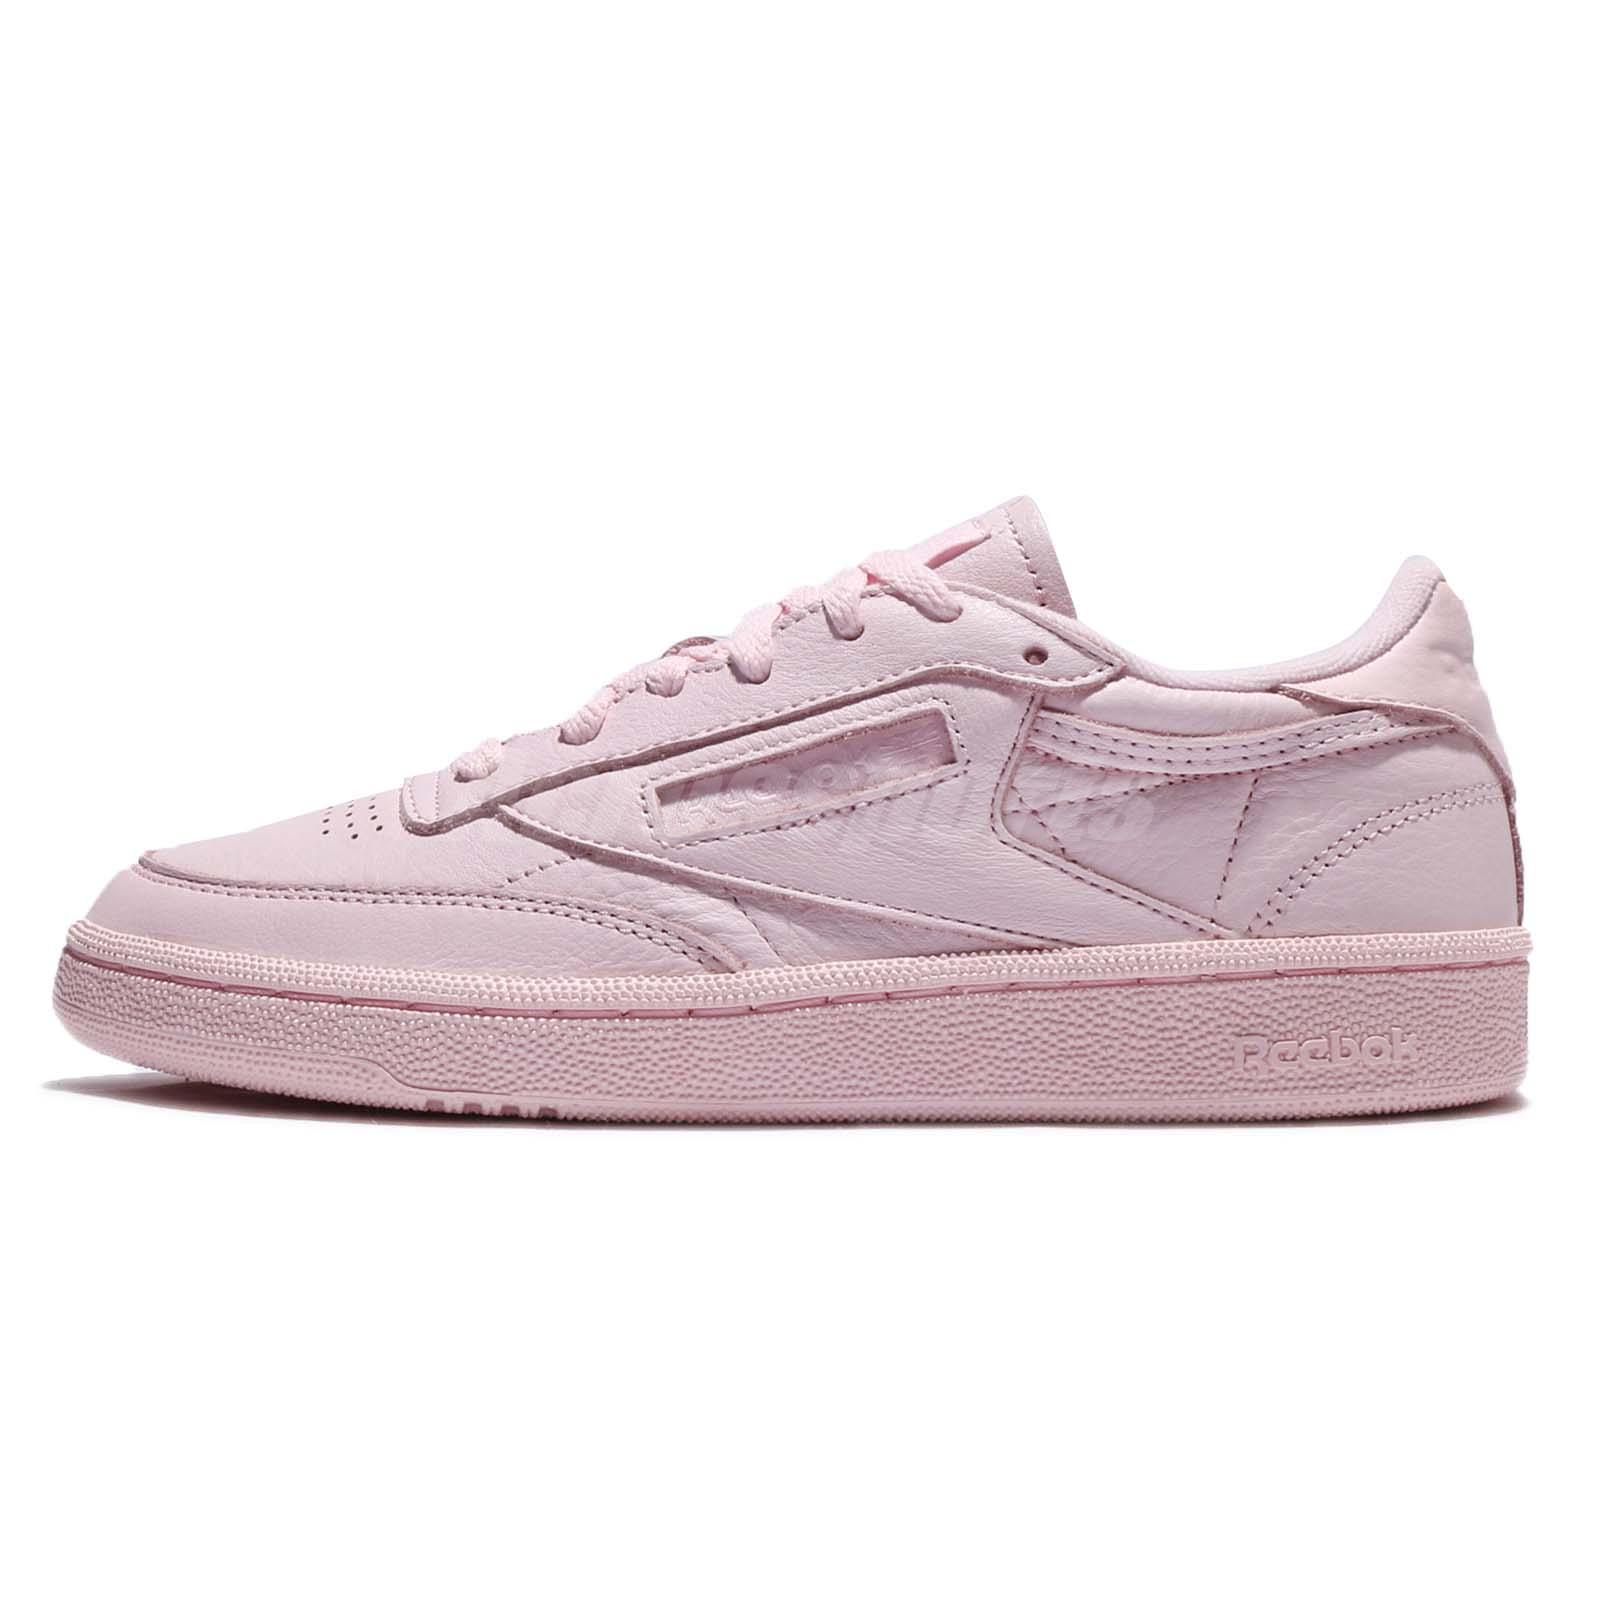 93d203140a04 Reebok Club C 85 ELM Elemental Pack Porcelain Pink Men Women Classic Shoe  BS5216